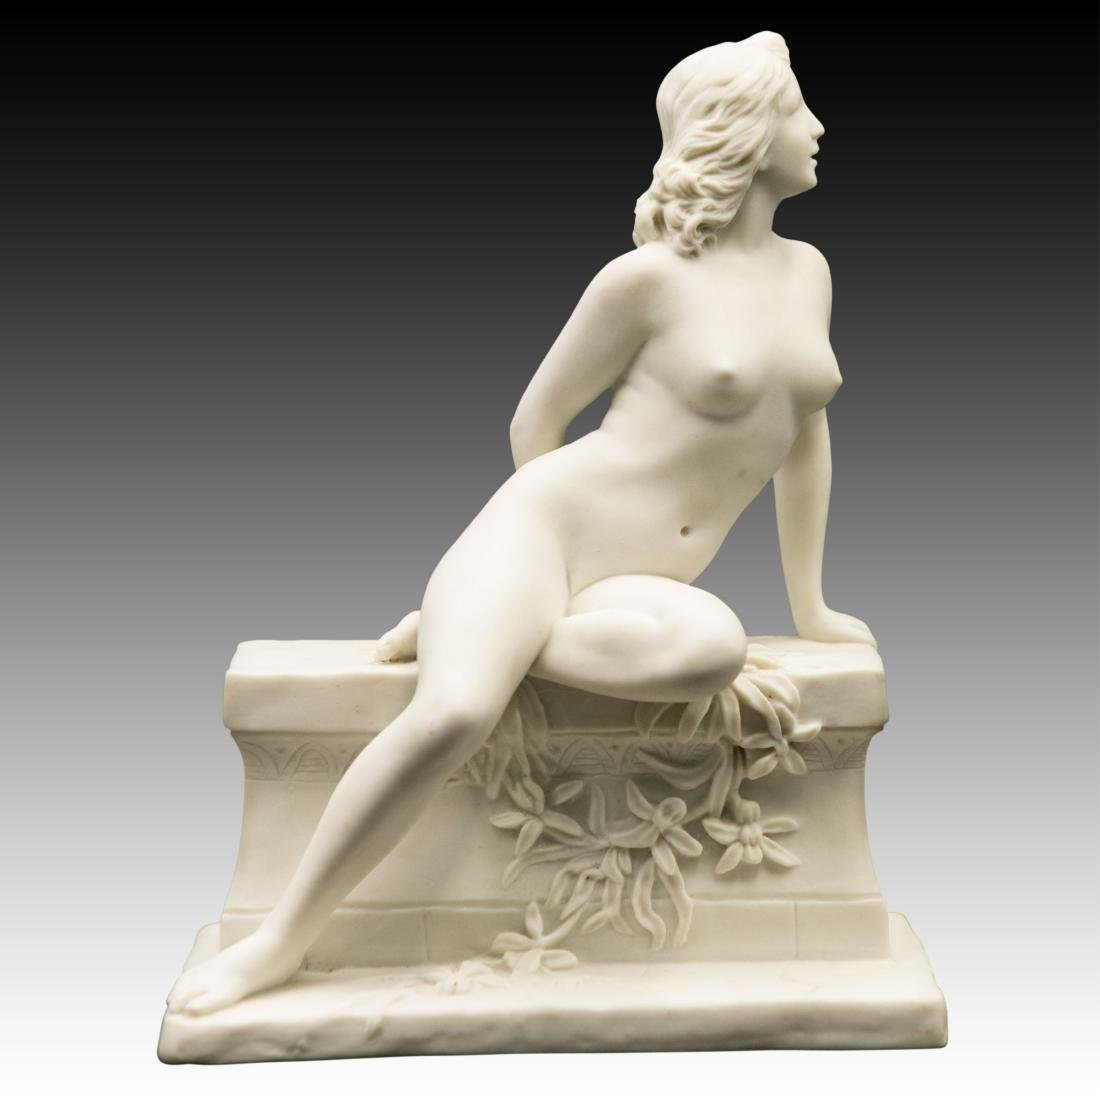 Young Nude woman Sitting on Marble Bench Figurine